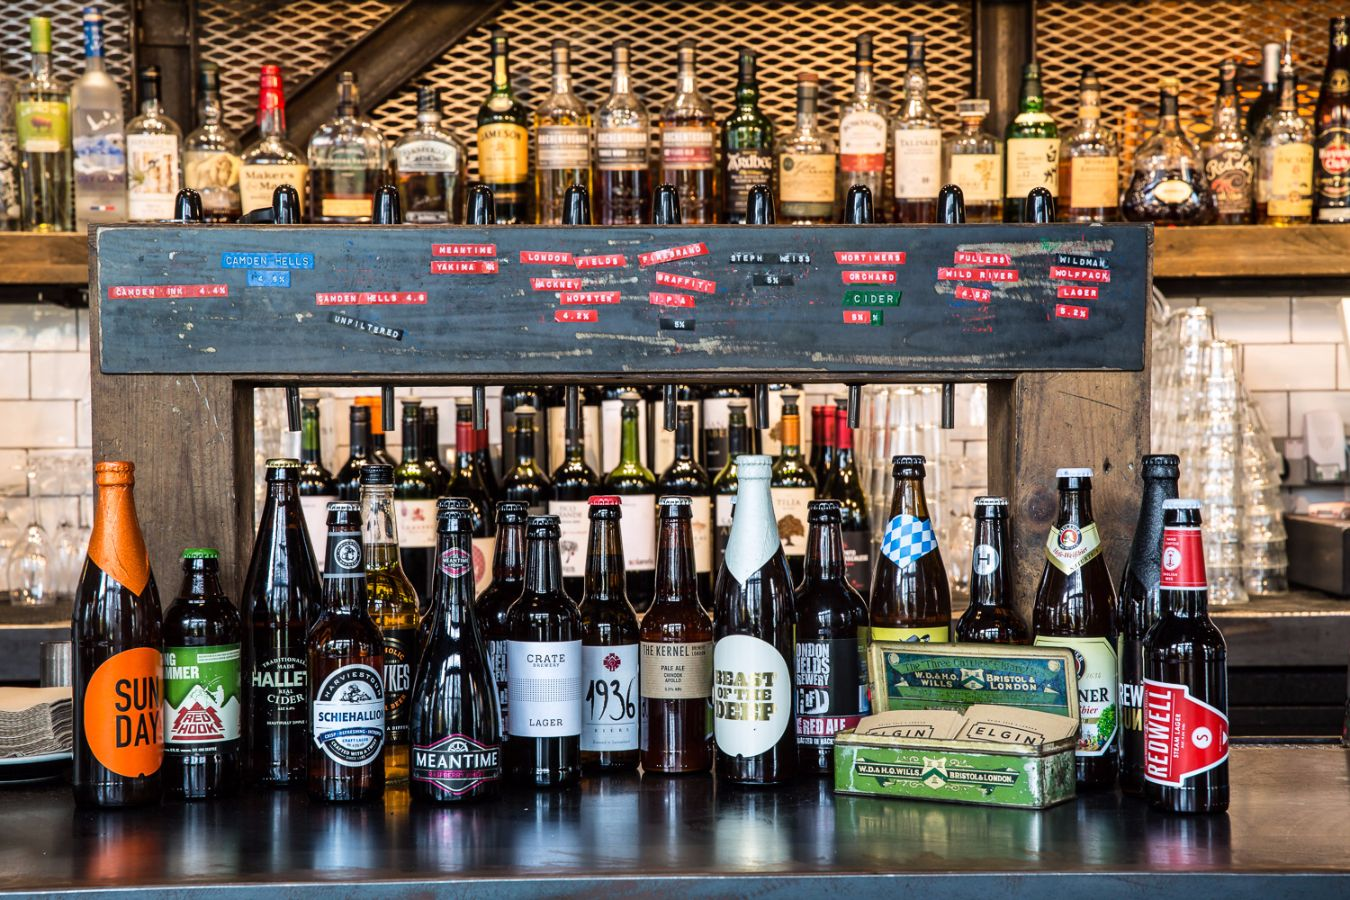 The Elgin works with independent British breweries and has a tasty menu that changes with the seasons.